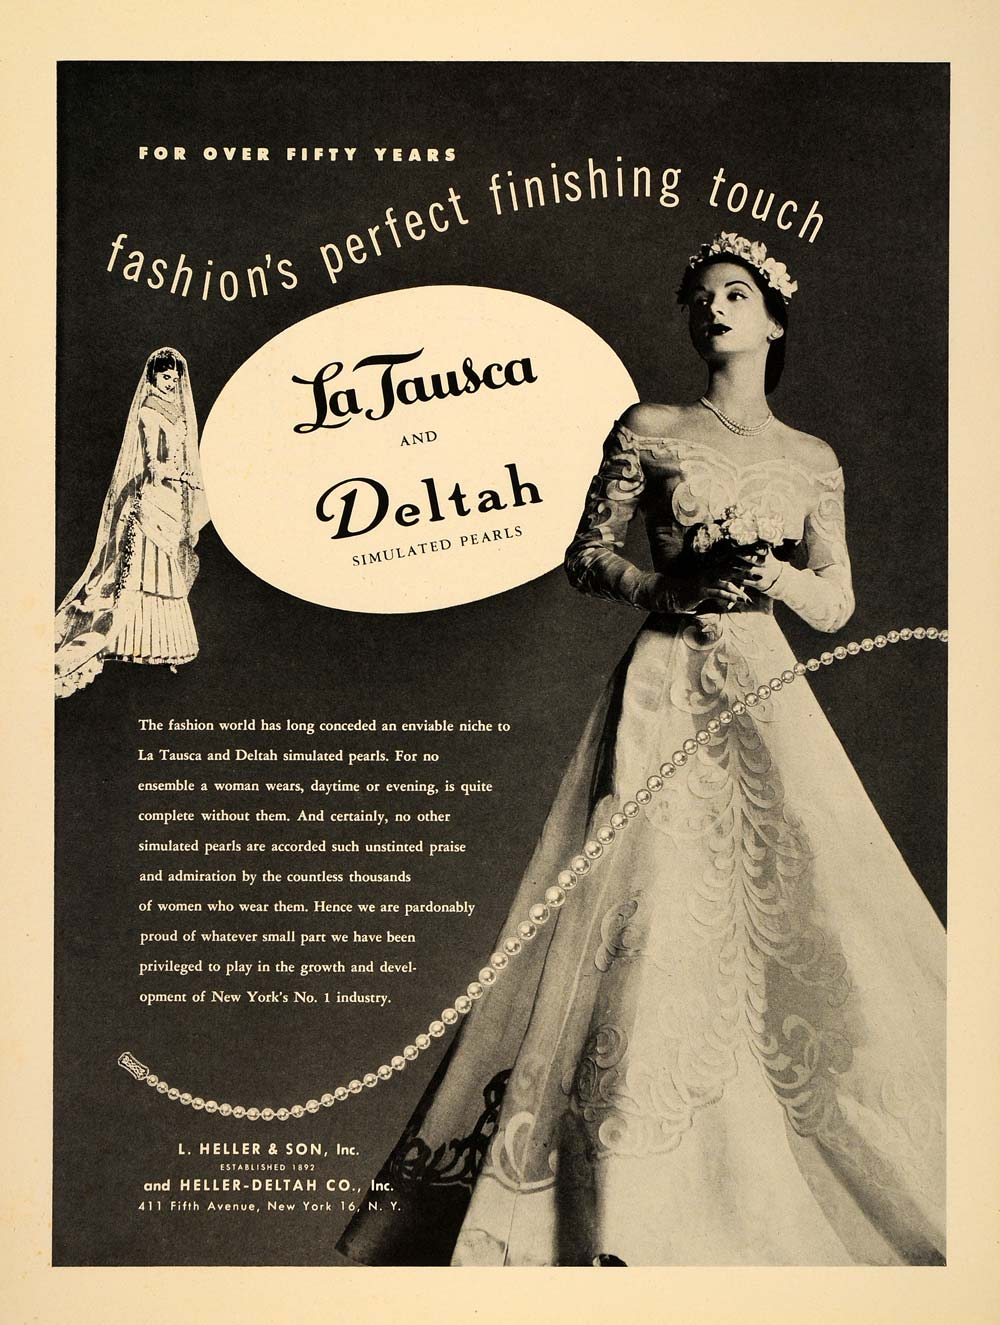 1948 Ad Vintage La Tausca Deltah Simulated Pearls Jewelry Bride Wedding Dress